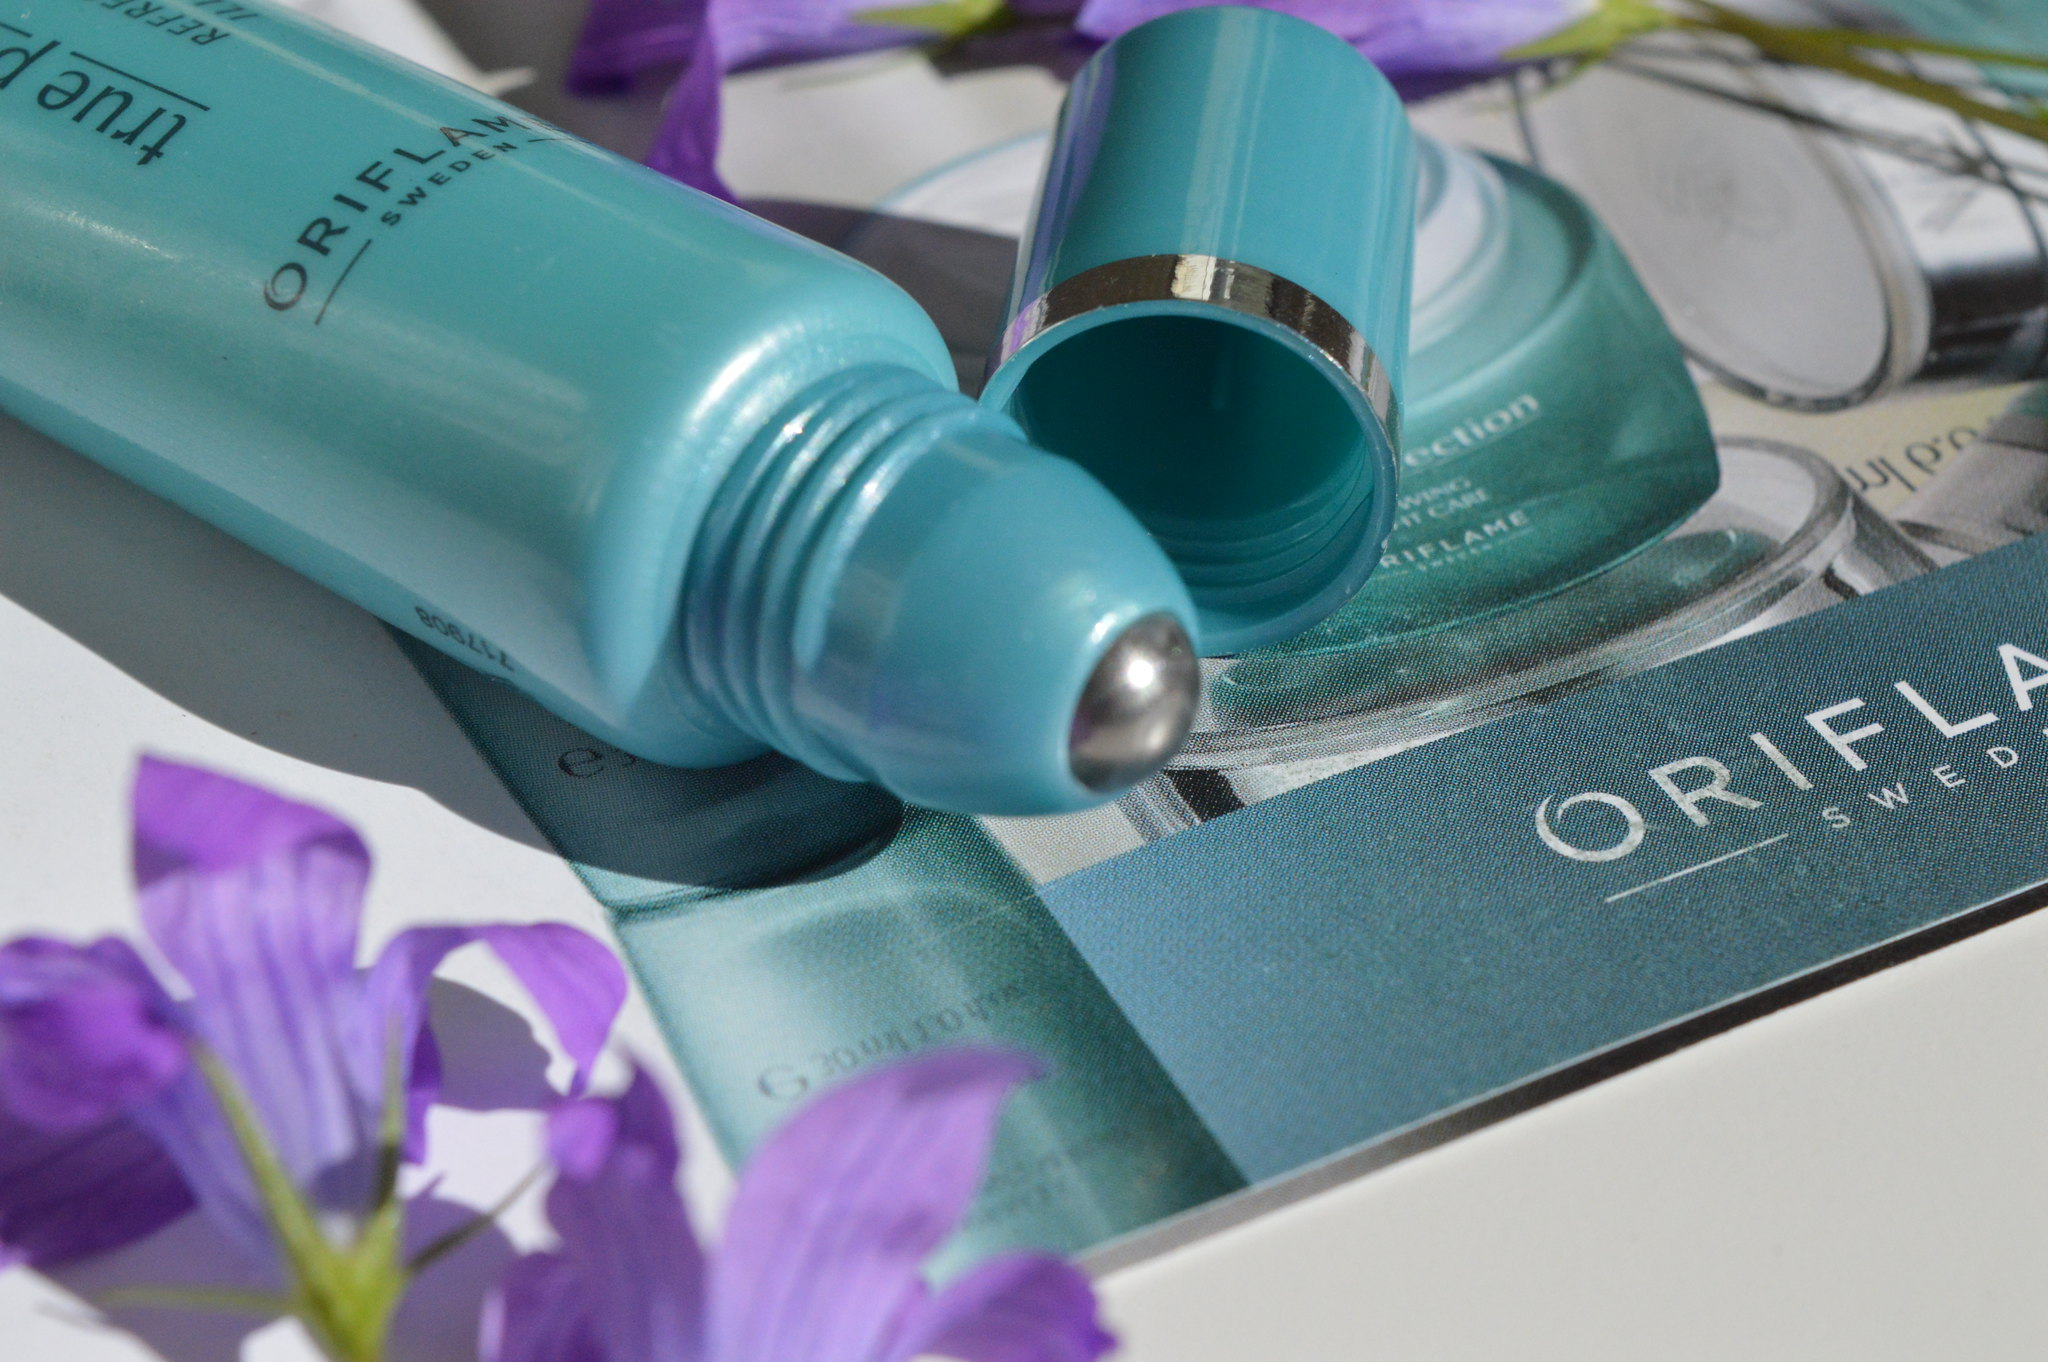 ORIFLAME NOVAGE REFRESHING EYE ILUMINATOR